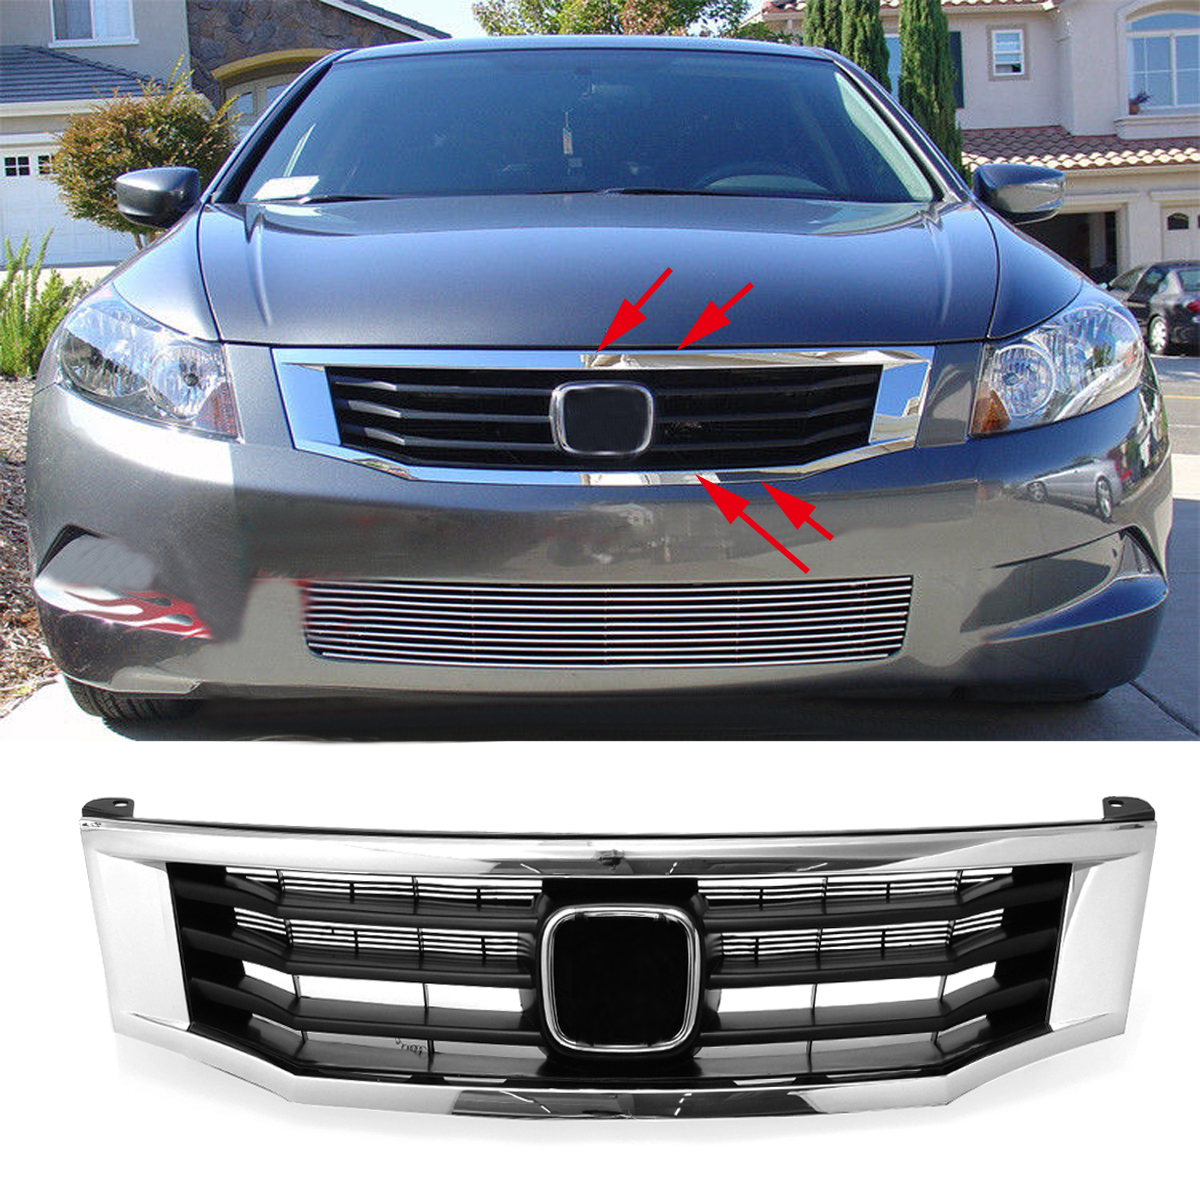 Car Front Bumper Hood Grille Molding Cover Black Exterior Bumpers For Honda for Accord 2008 2009 2010